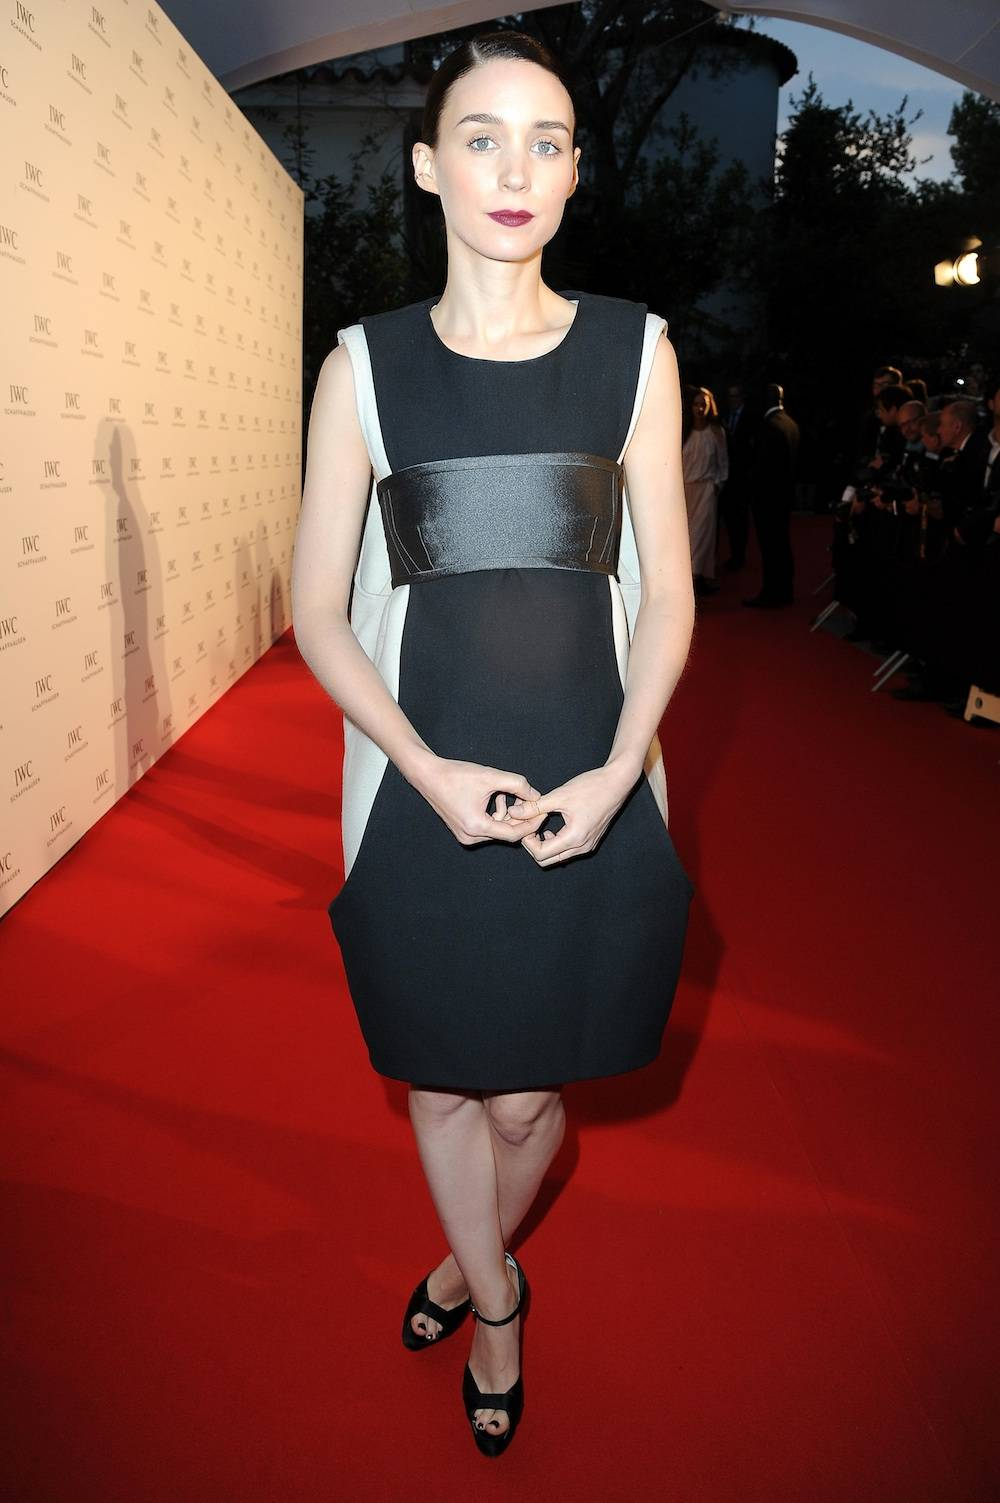 IWC 'For The Love Of Cinema' Cannes Event - The 66th Annual Cannes Film Festival